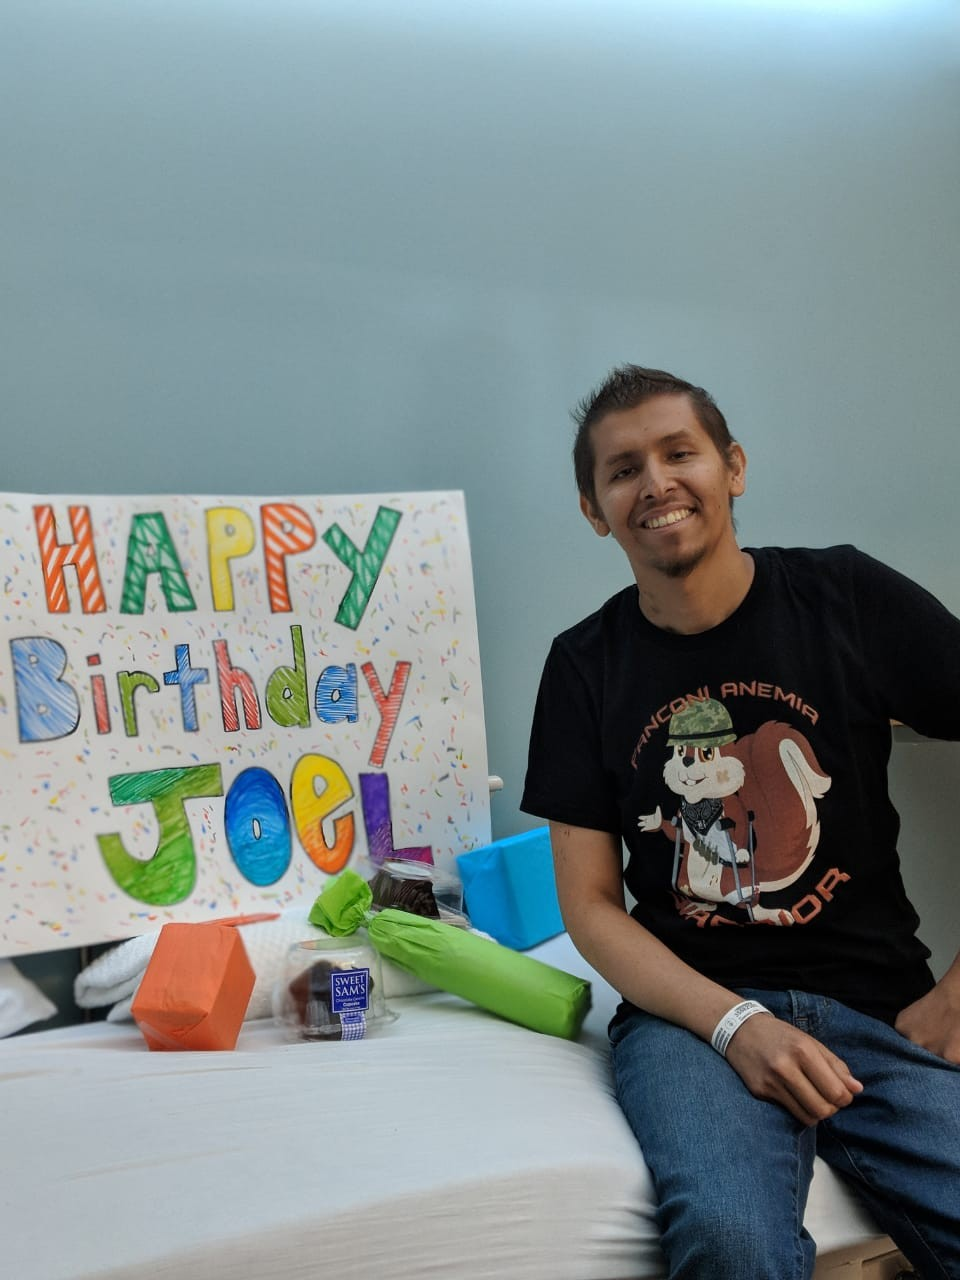 Joel with a birthday sign